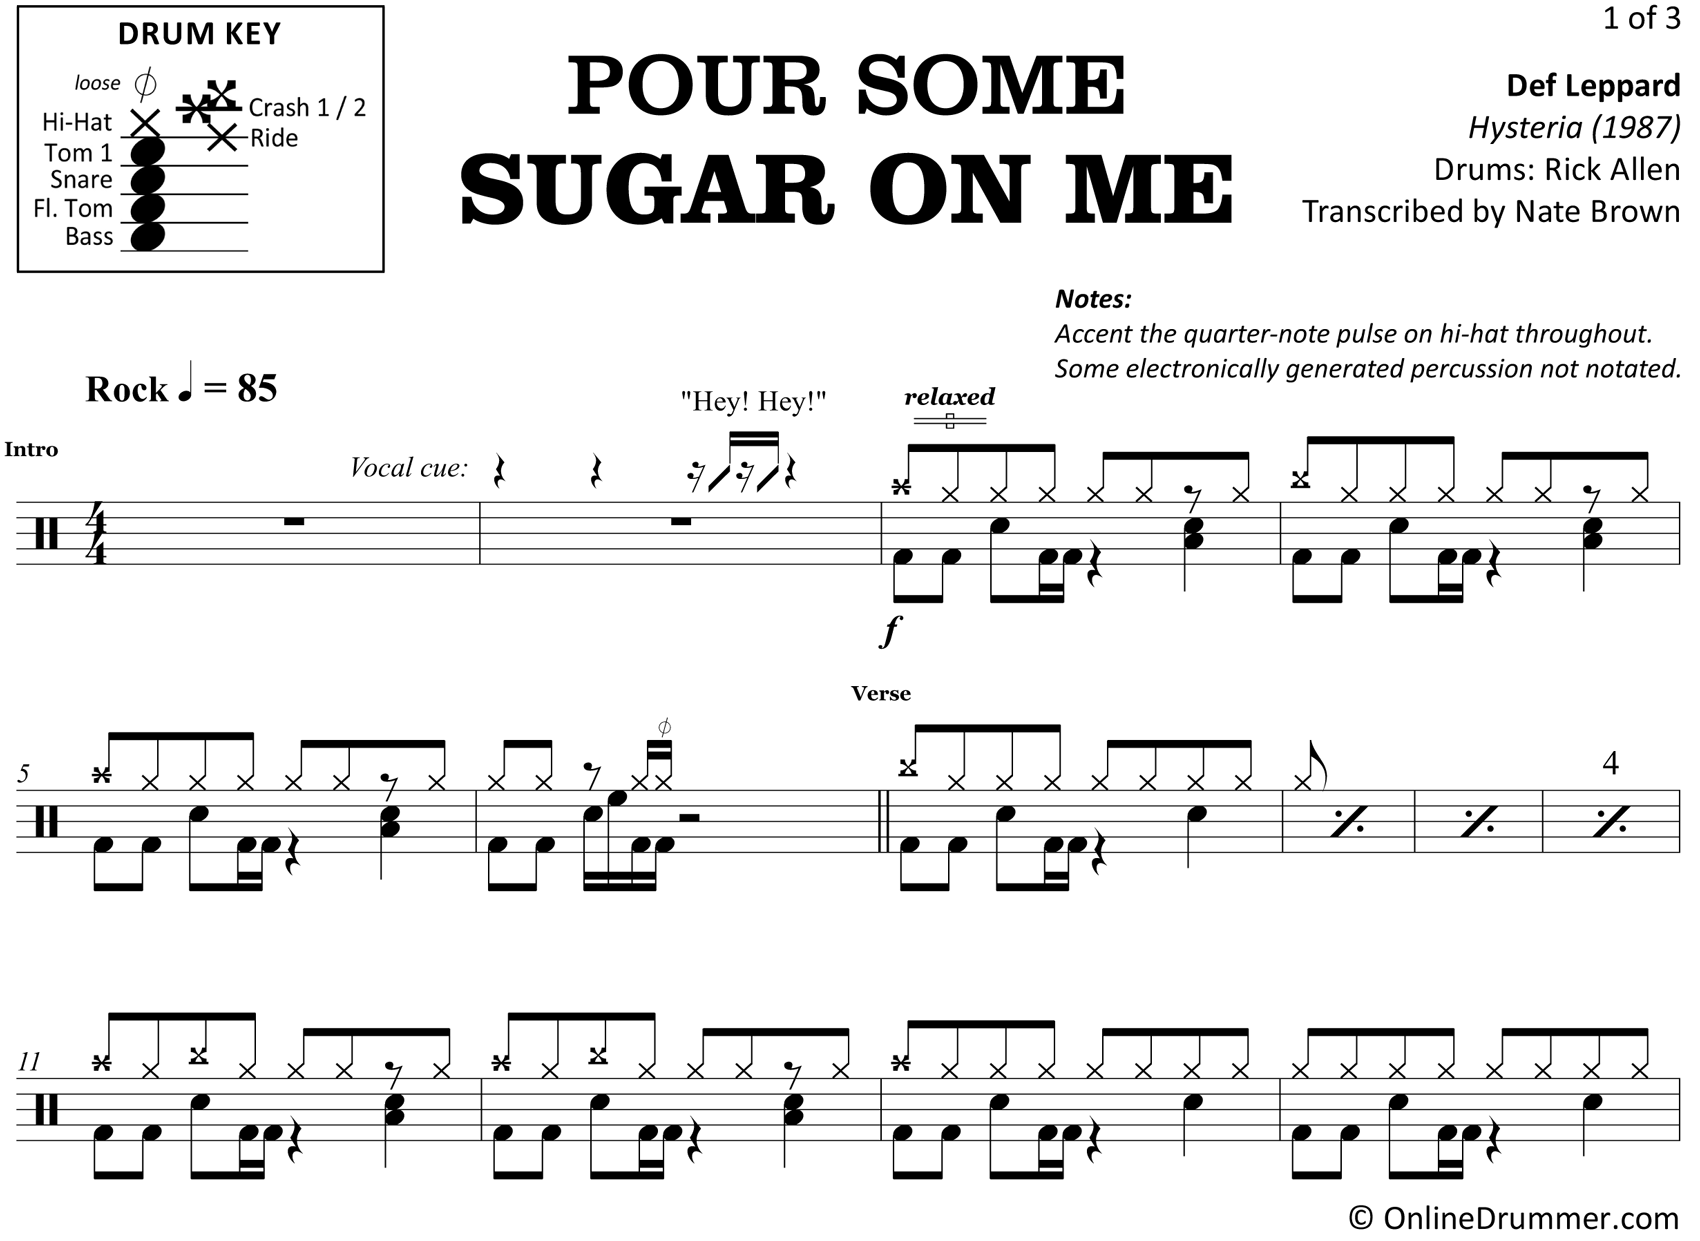 Pour Some Sugar on Me - Def Leppard - Drum Sheet Music